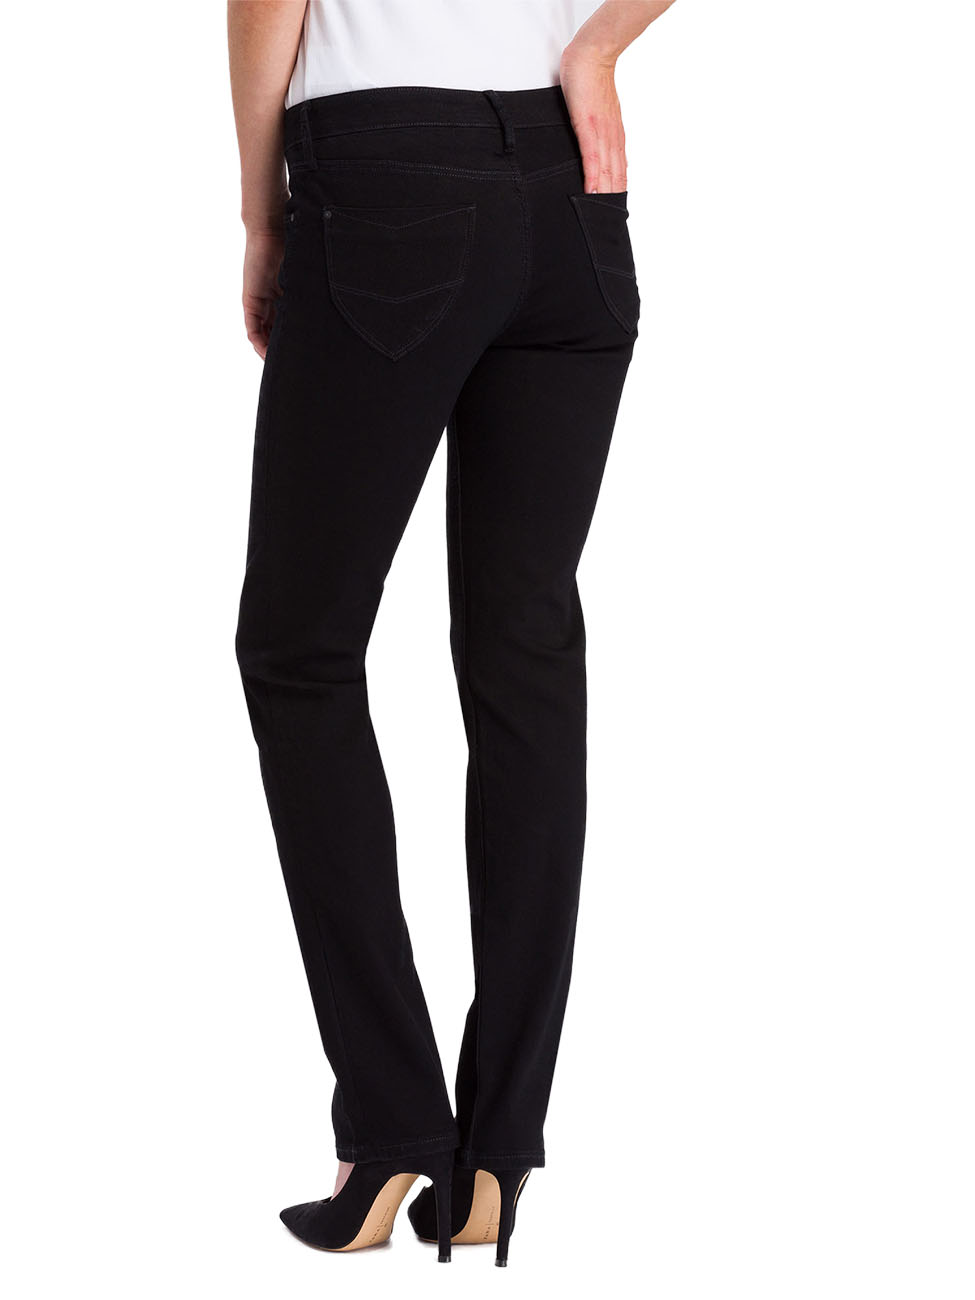 cross-jeans-damen-jeans-rose-regular-fit-schwarz-black-black, 54.95 EUR @ jeans